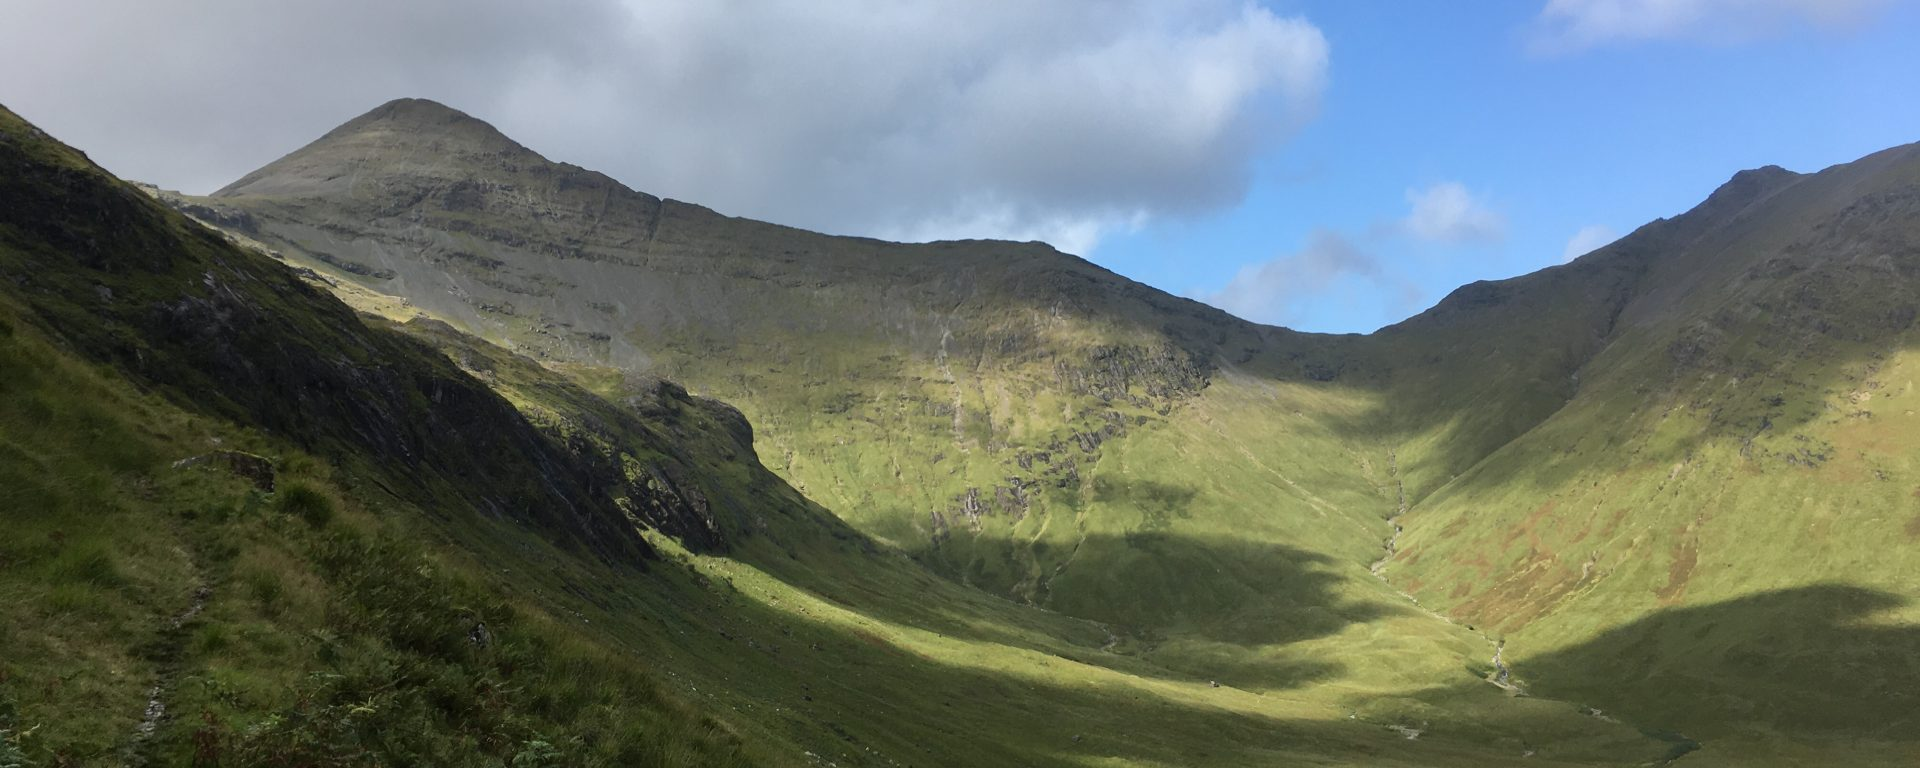 Hiking and Wild Camping in Scotland - TrekSumo